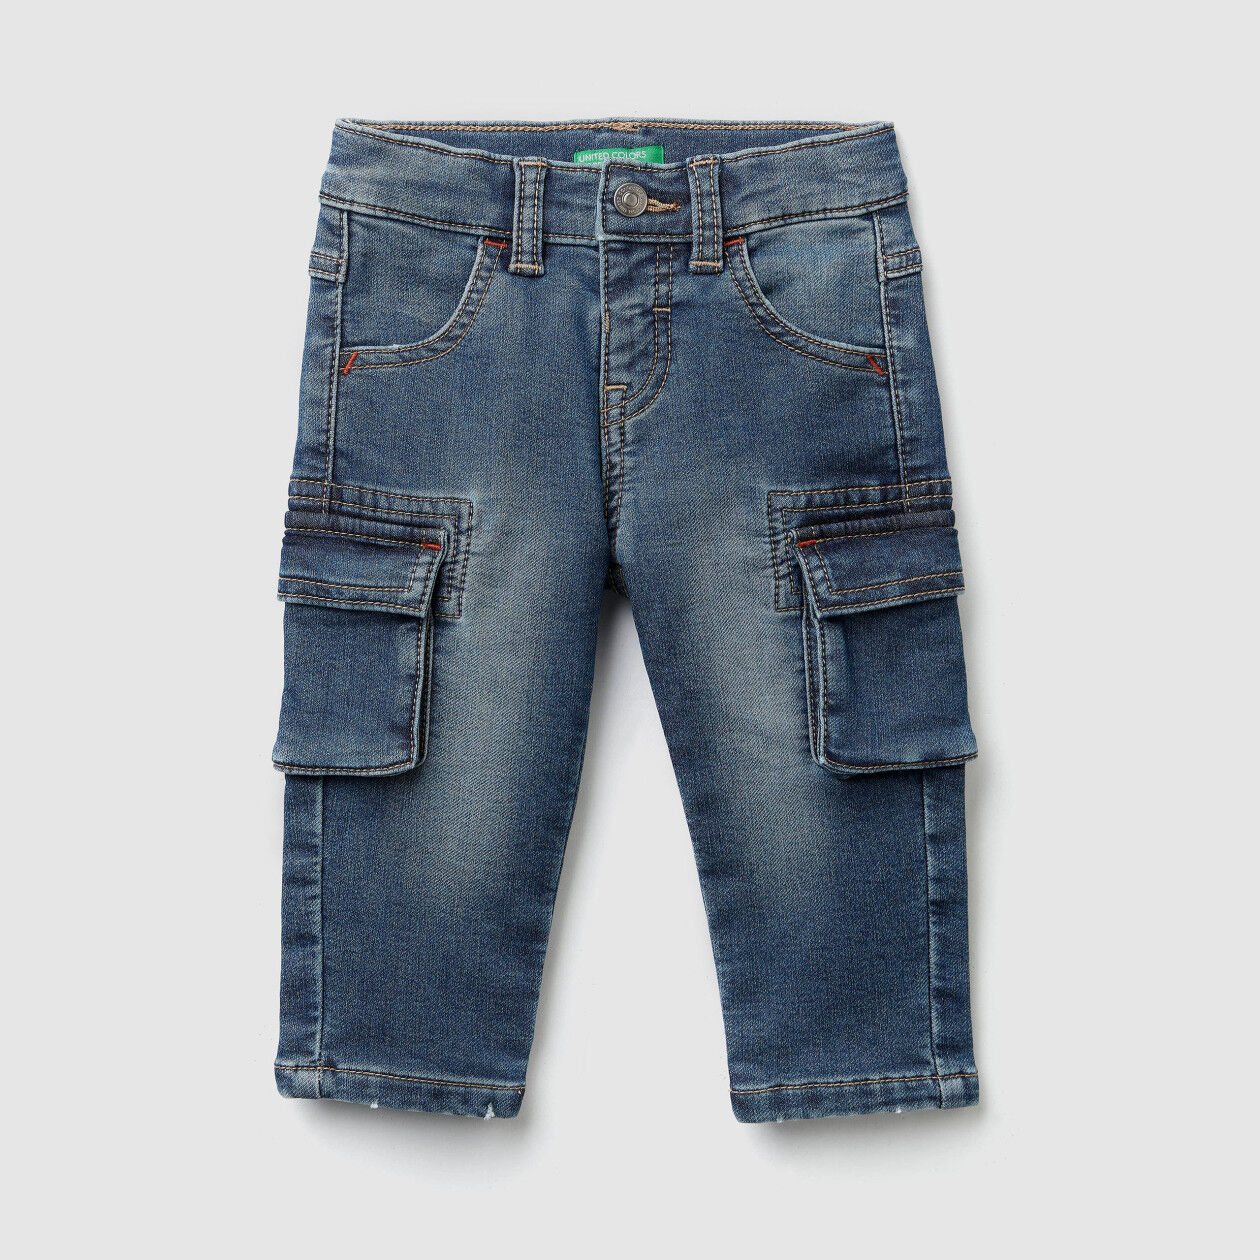 Cargo jeans in thermal denim